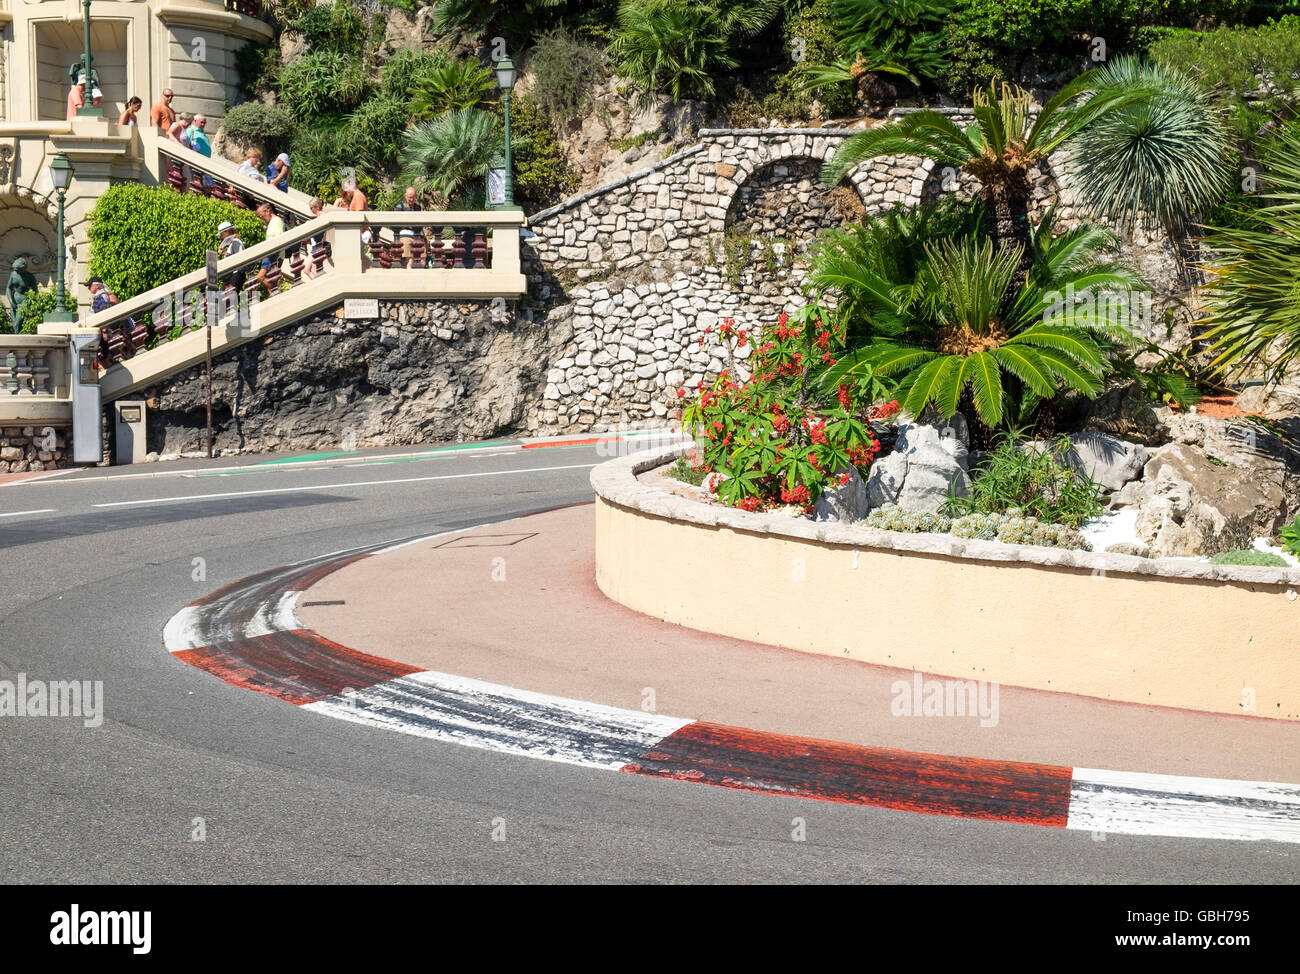 The famous Fairmont hairpin bend on the Formula one Grand Prix circuit at Monte Carlo, Monaco, - Stock Image